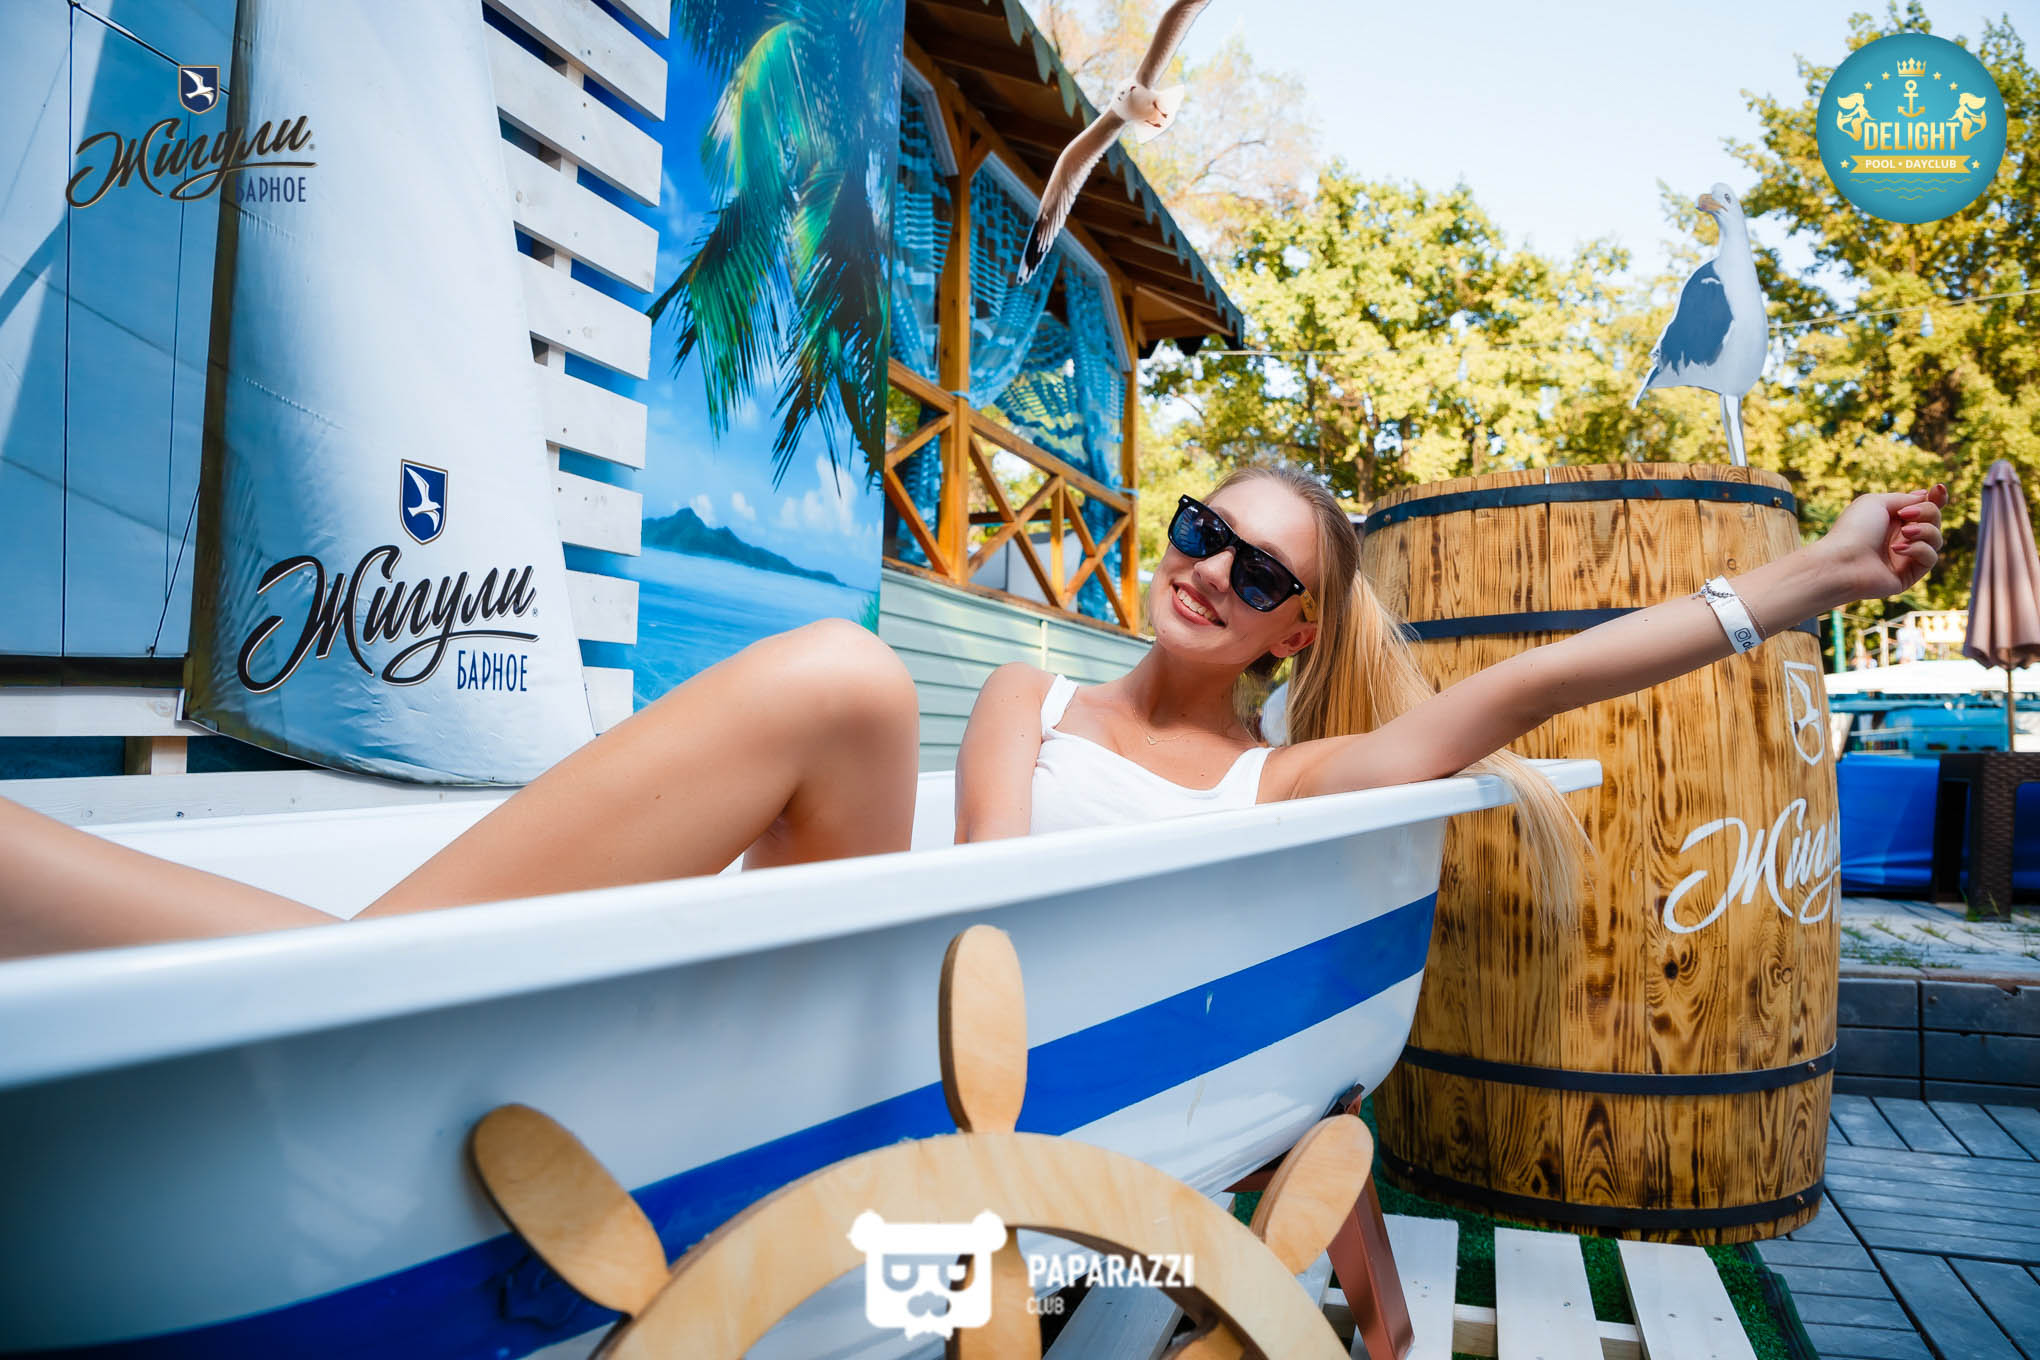 """Жигули Барное"" в ""Delight Pool DayClub"""